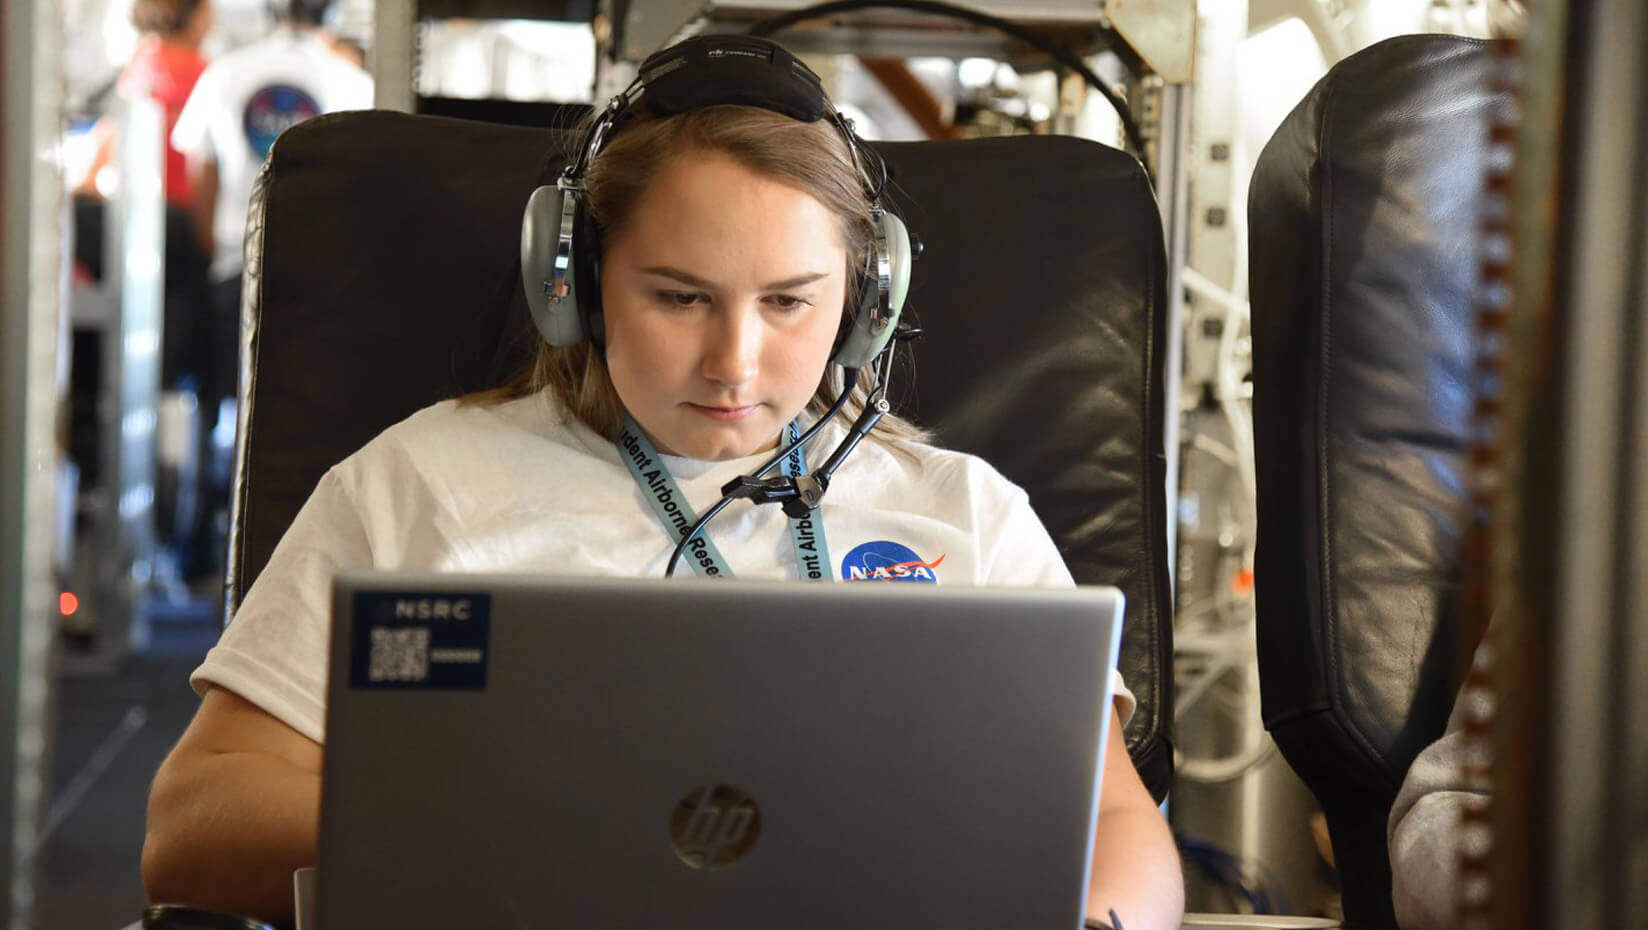 Honors student Laura Paye is shown wearing a headset, using a laptop, wearing a NASA tshirt